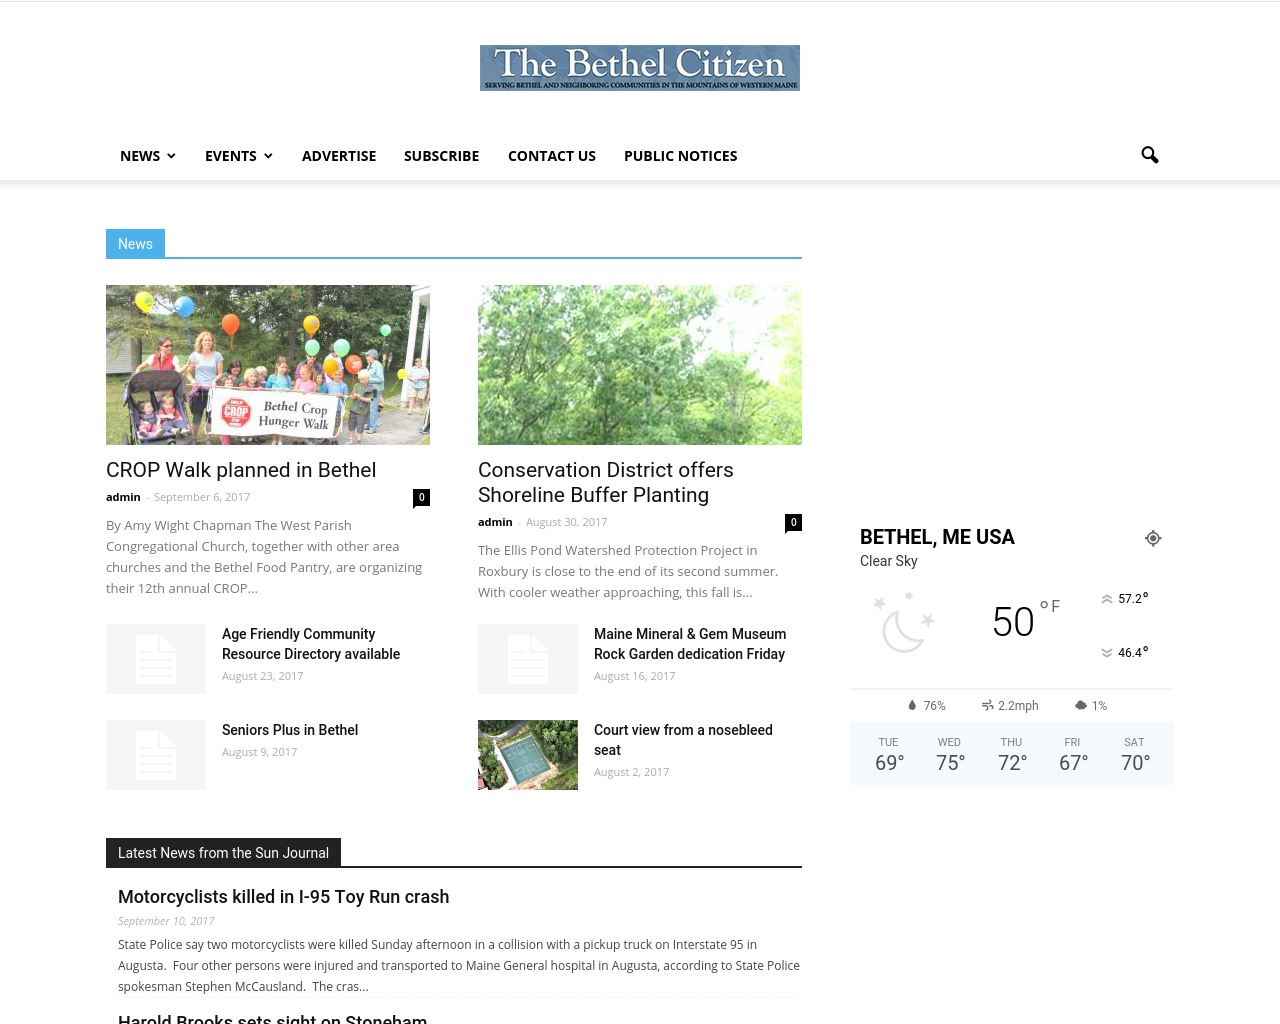 The-Bethel-Citizen-Advertising-Reviews-Pricing